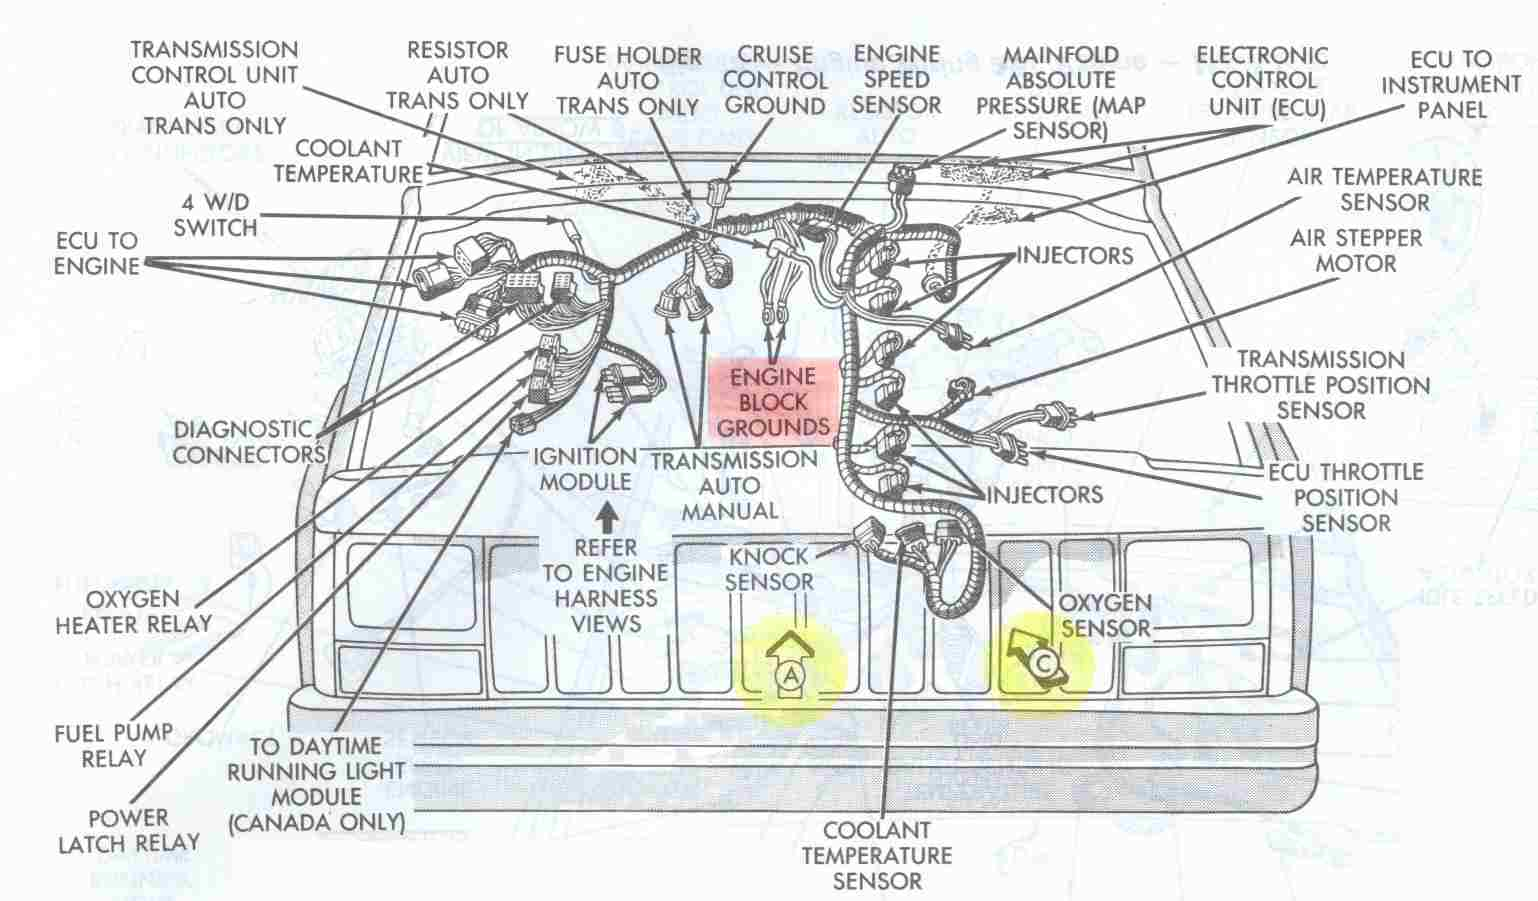 96 jeep cherokee 5 2 engine diagram jeep cherokee electrical - diagnosing erratic behavior of ... jeep 2 5 liter engine diagram